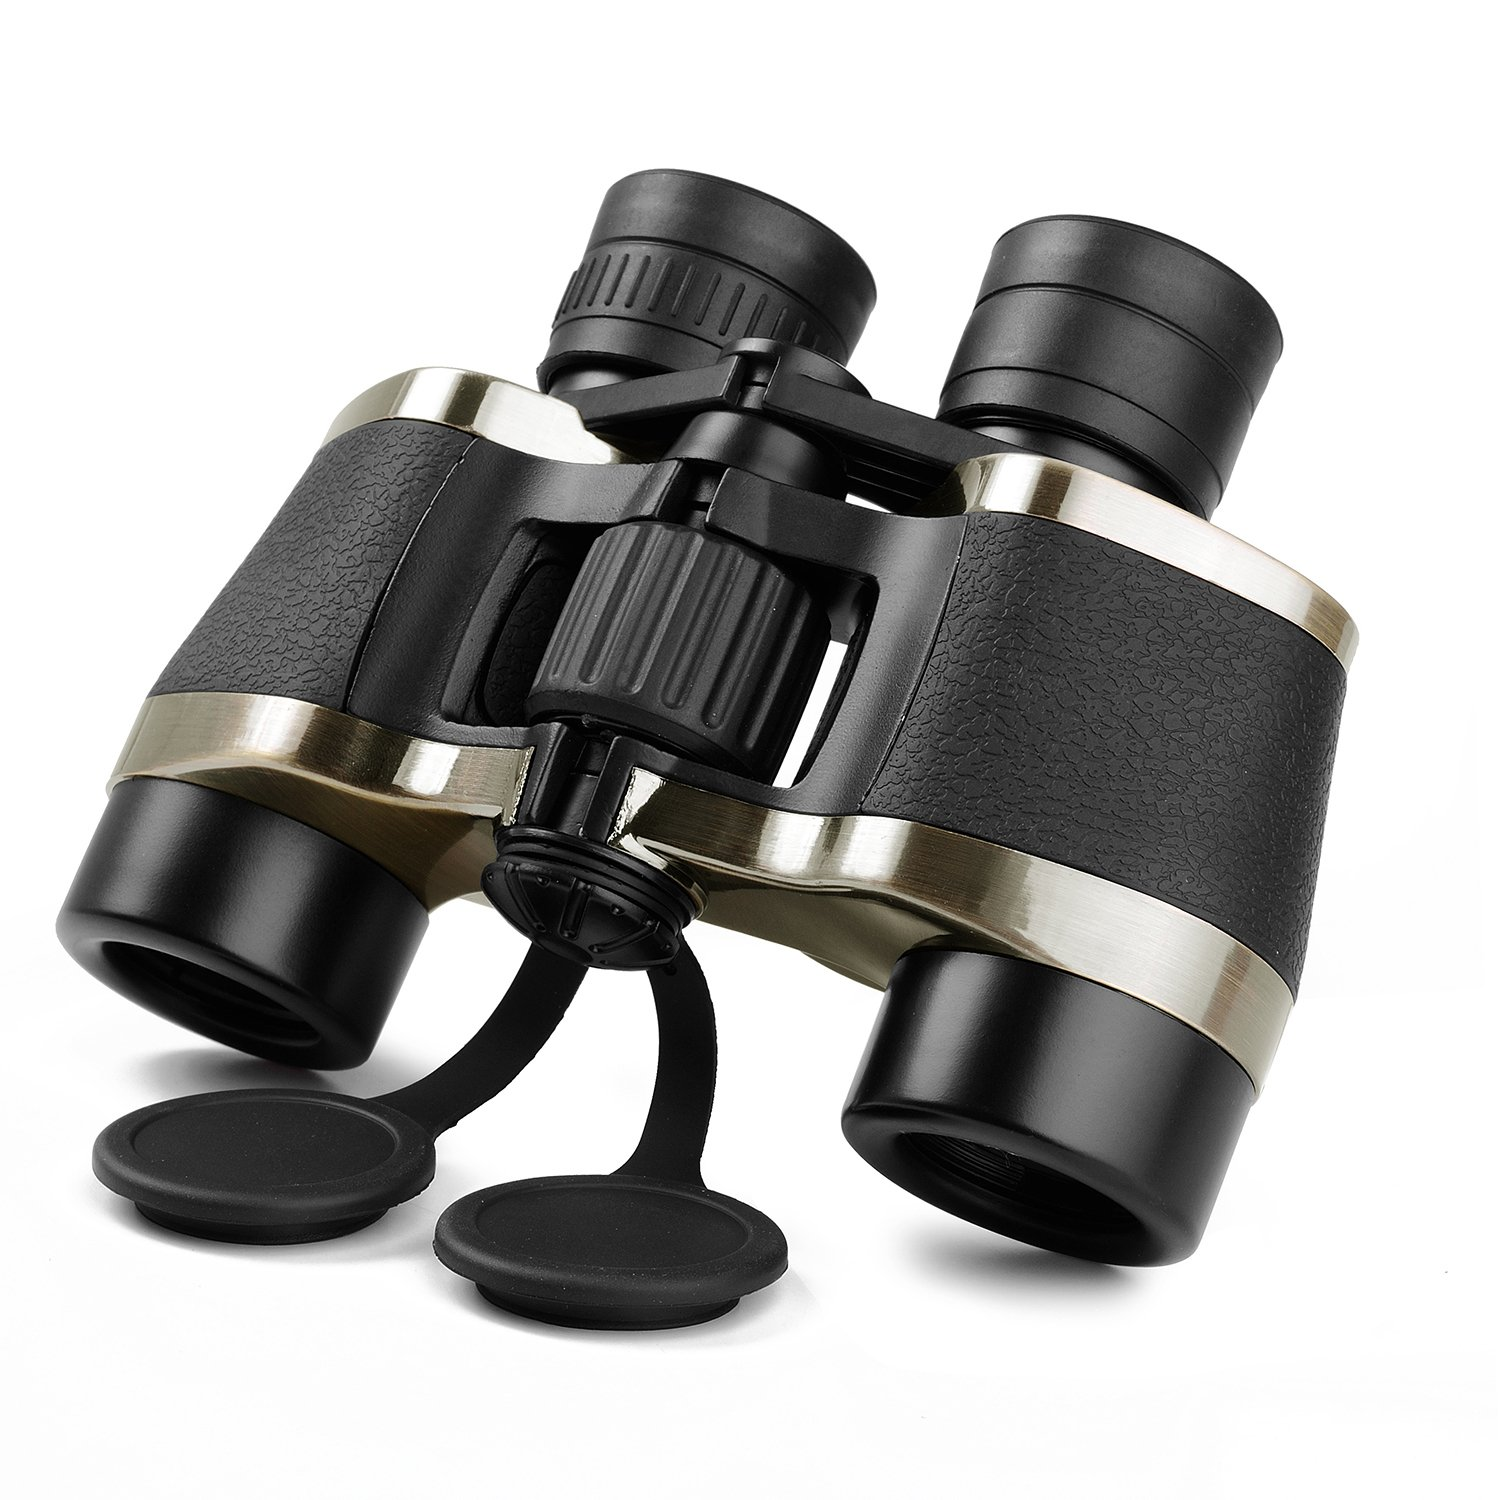 Luxury Waterproof Binoculars Telescope 10x32, Best Choice for Travelling Hunting Sports Games and Outdoor Activities Extremely Clear and Bright by Farspy